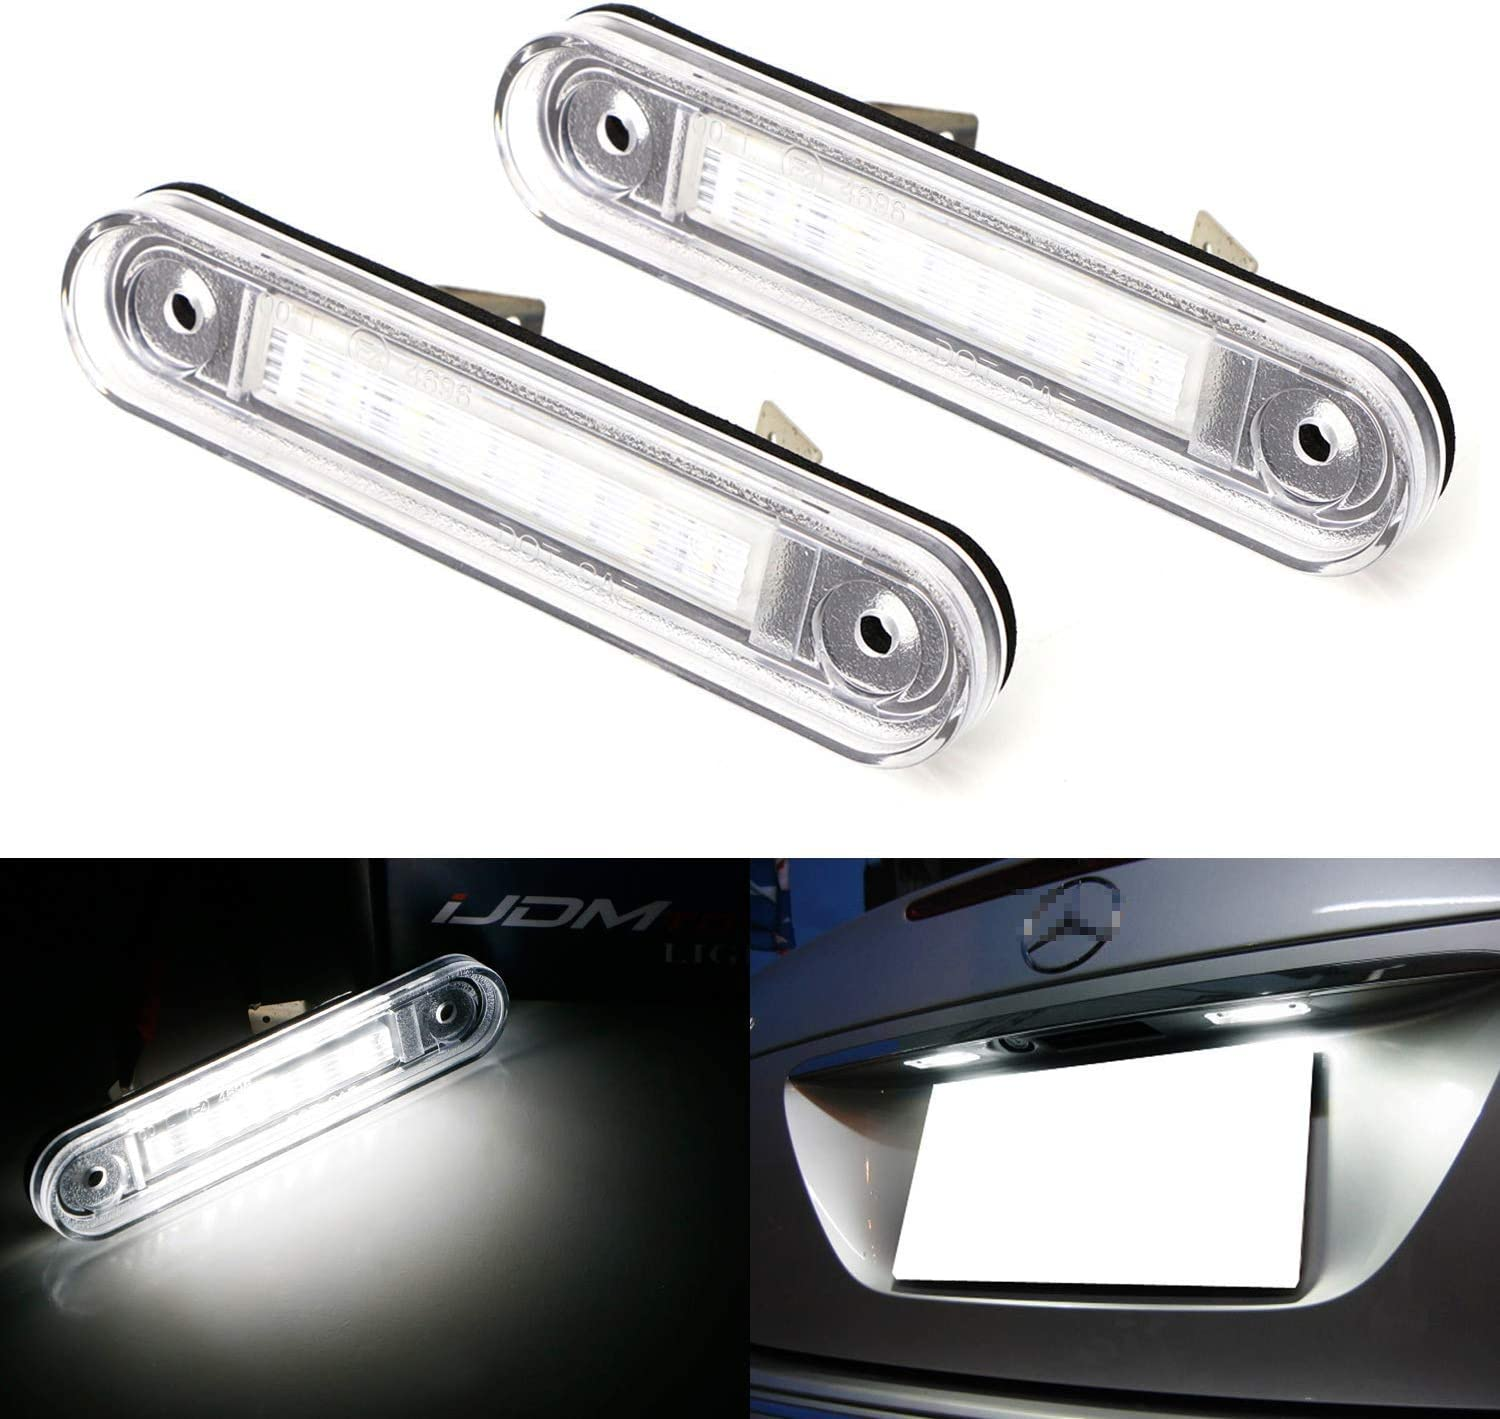 iJDMTOY OEM-Fit Long Beach Mall 3W Full LED License Light W Compatible Kit Special price for a limited time Plate